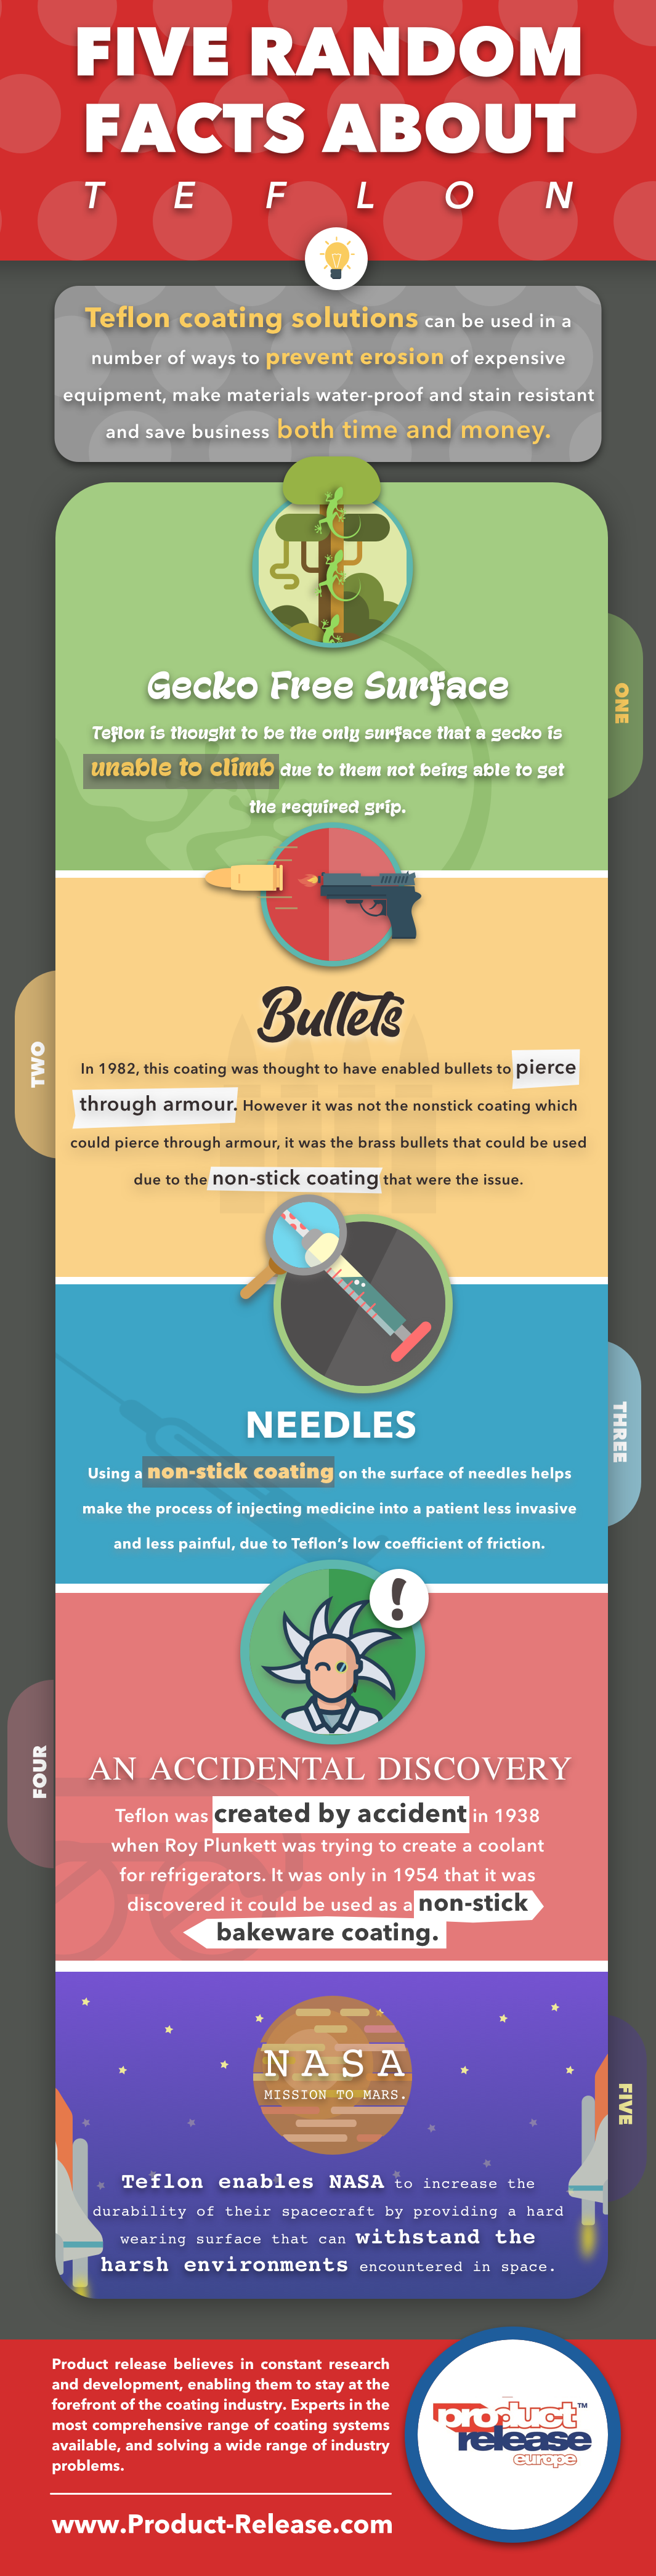 Infographic] 5 Random Facts About Teflon - Product Release